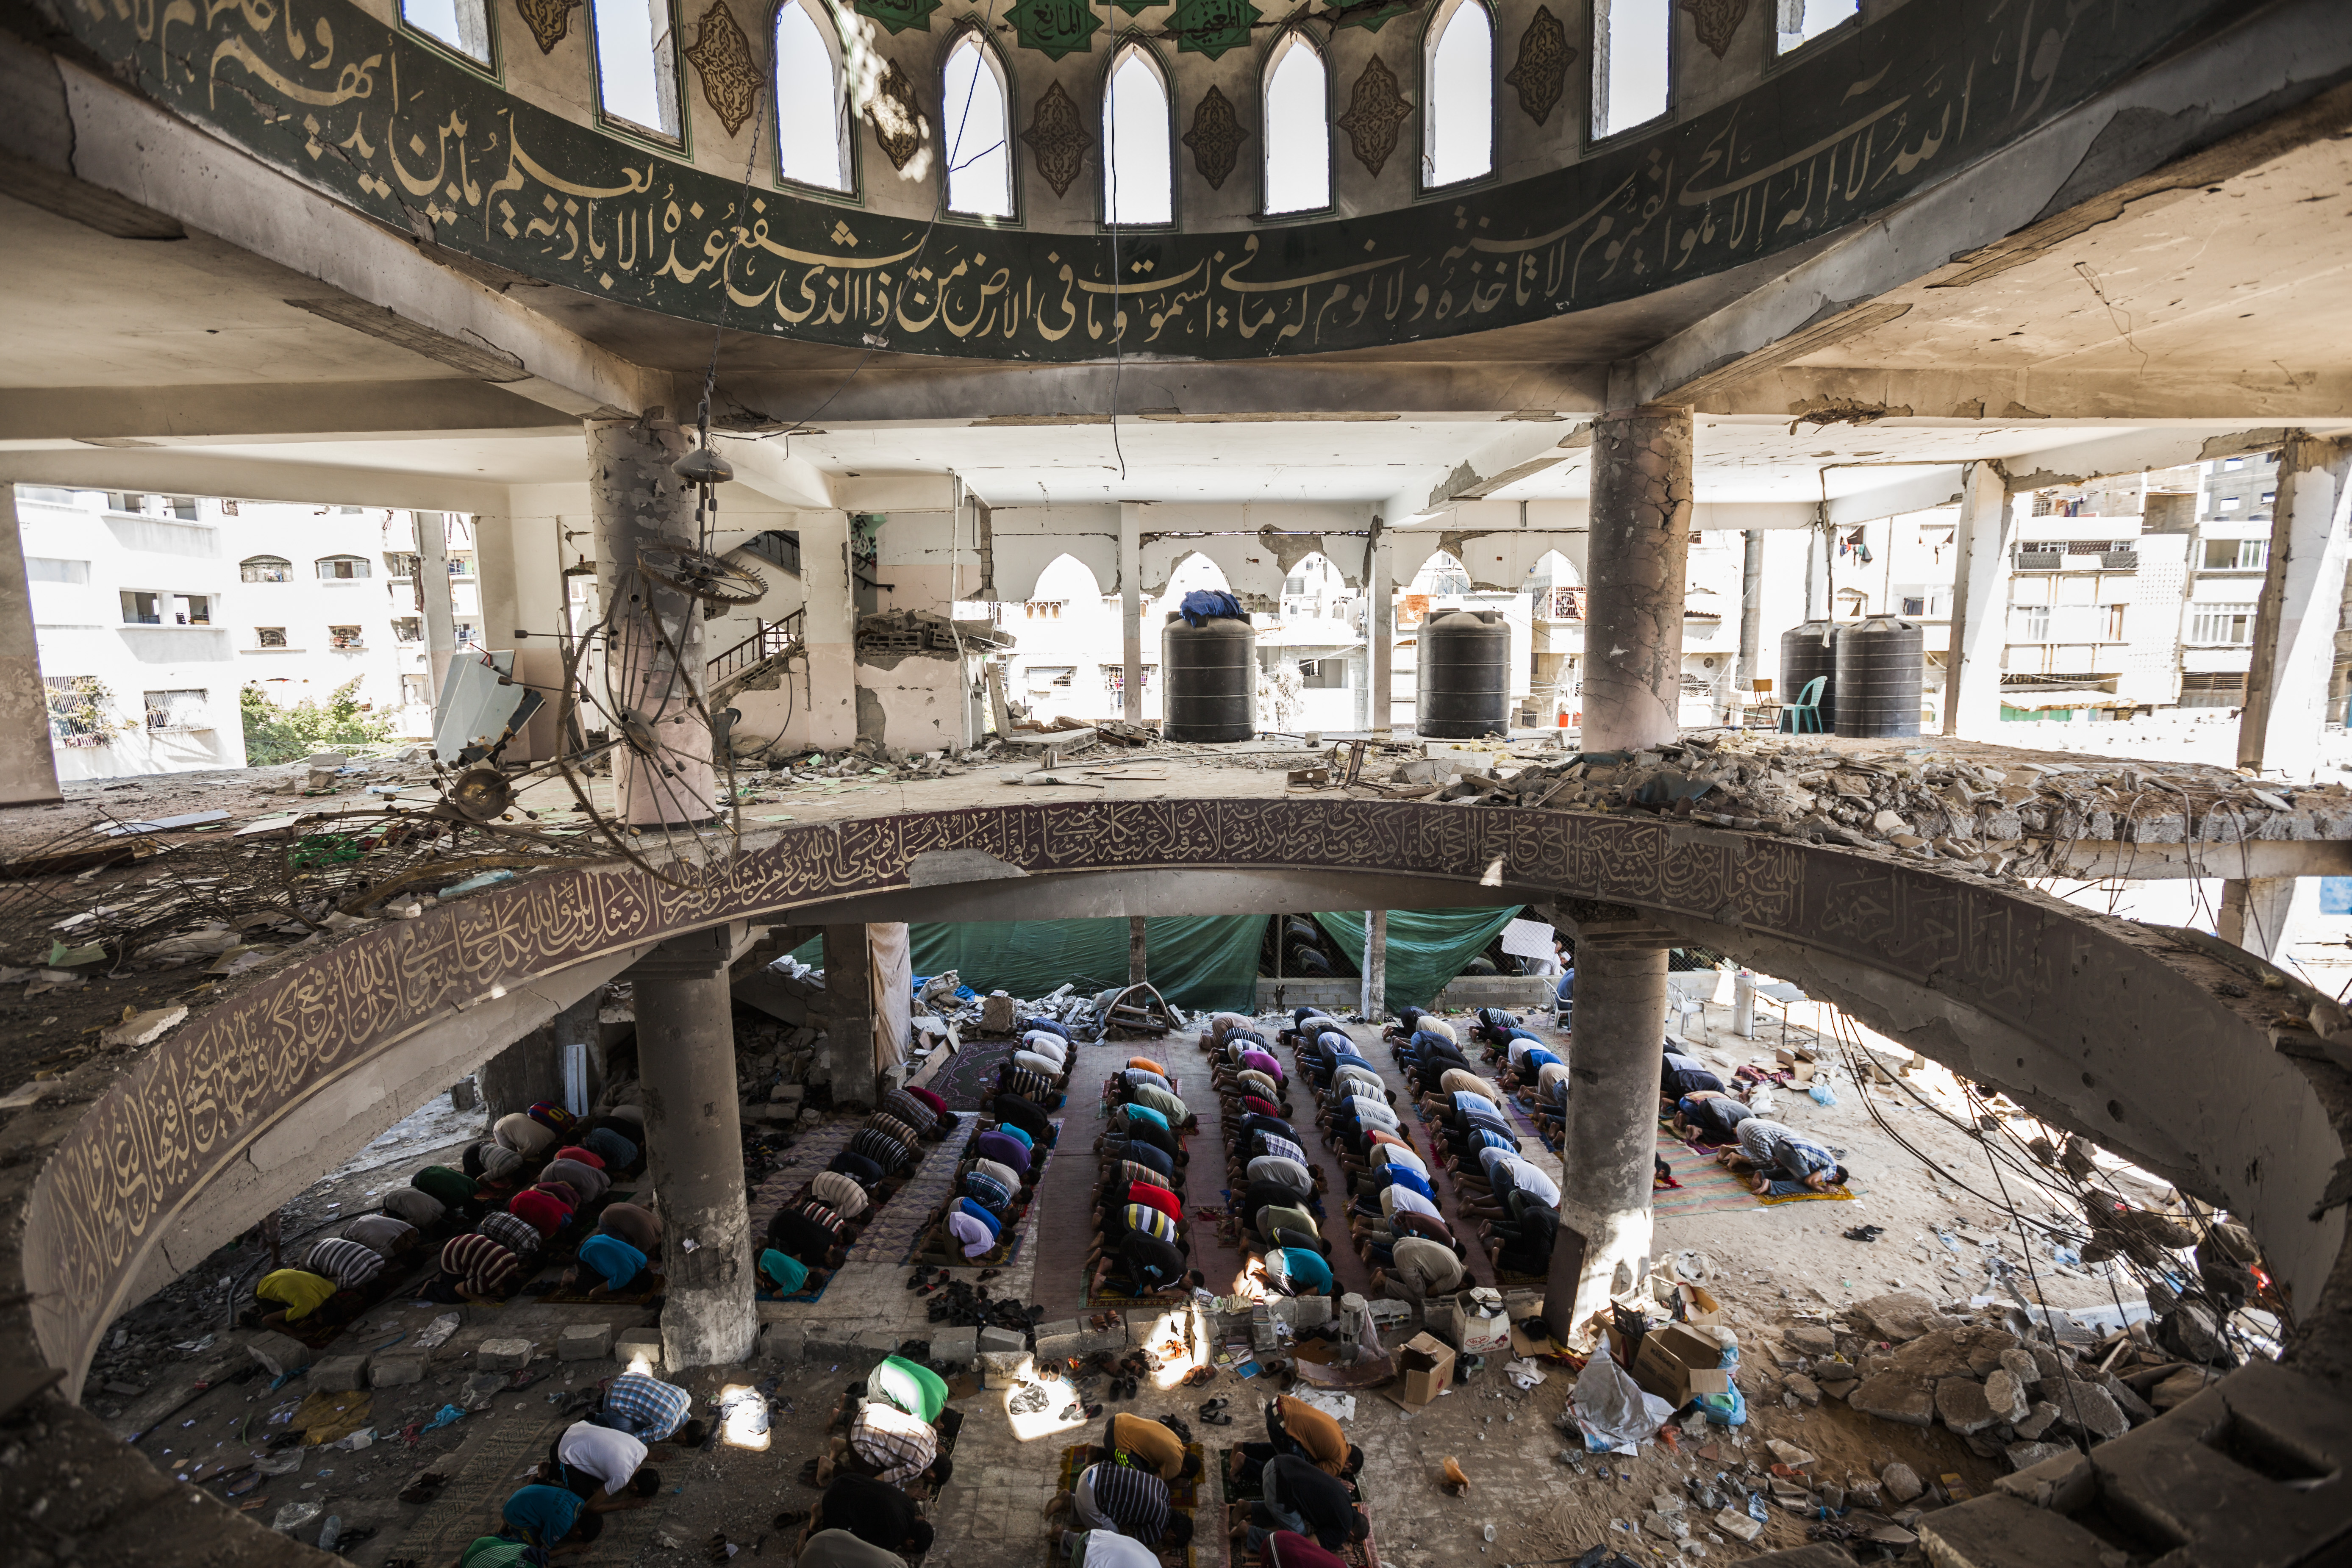 Destroyed mosques in Gaza after the last war against israel : Prays in a destroyed mosque in Gaza during the Eid al-Adha celebrations